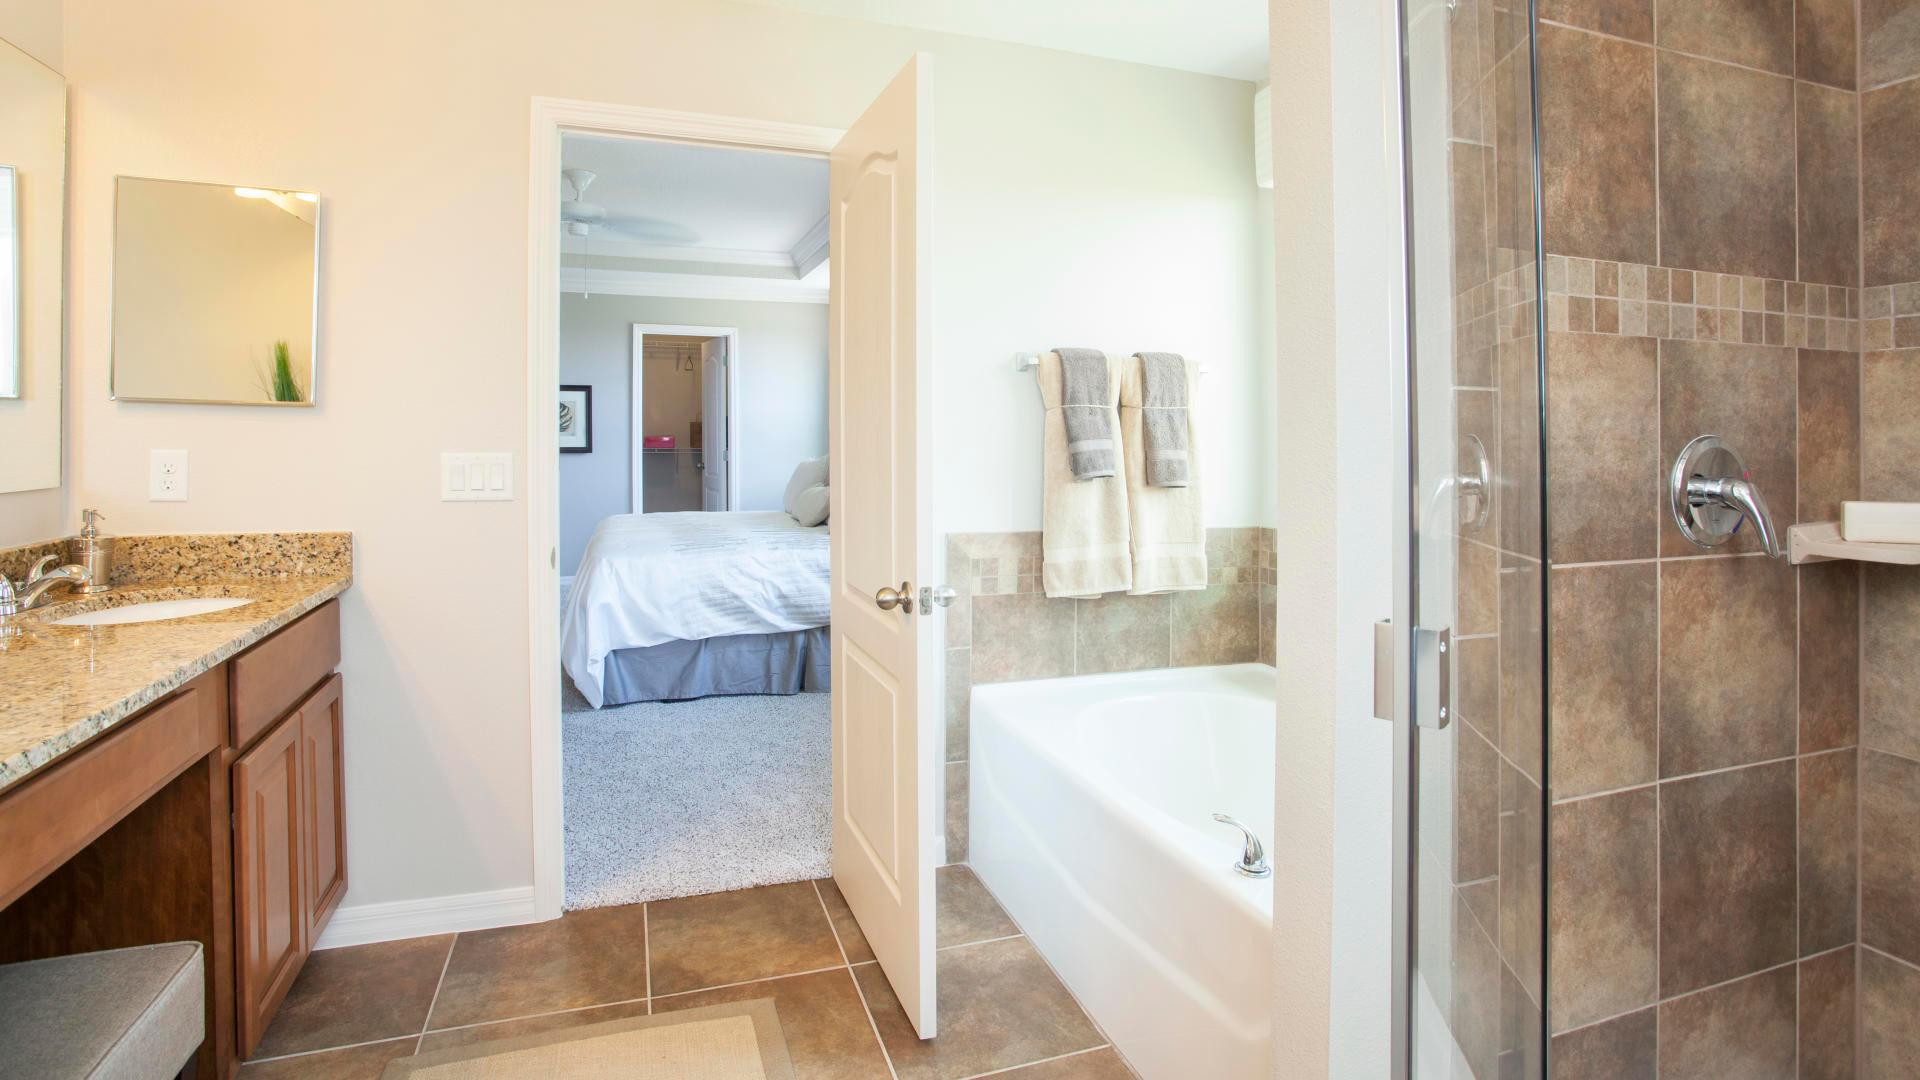 Bathroom featured in the Rockford By Maronda Homes in Jacksonville-St. Augustine, GA